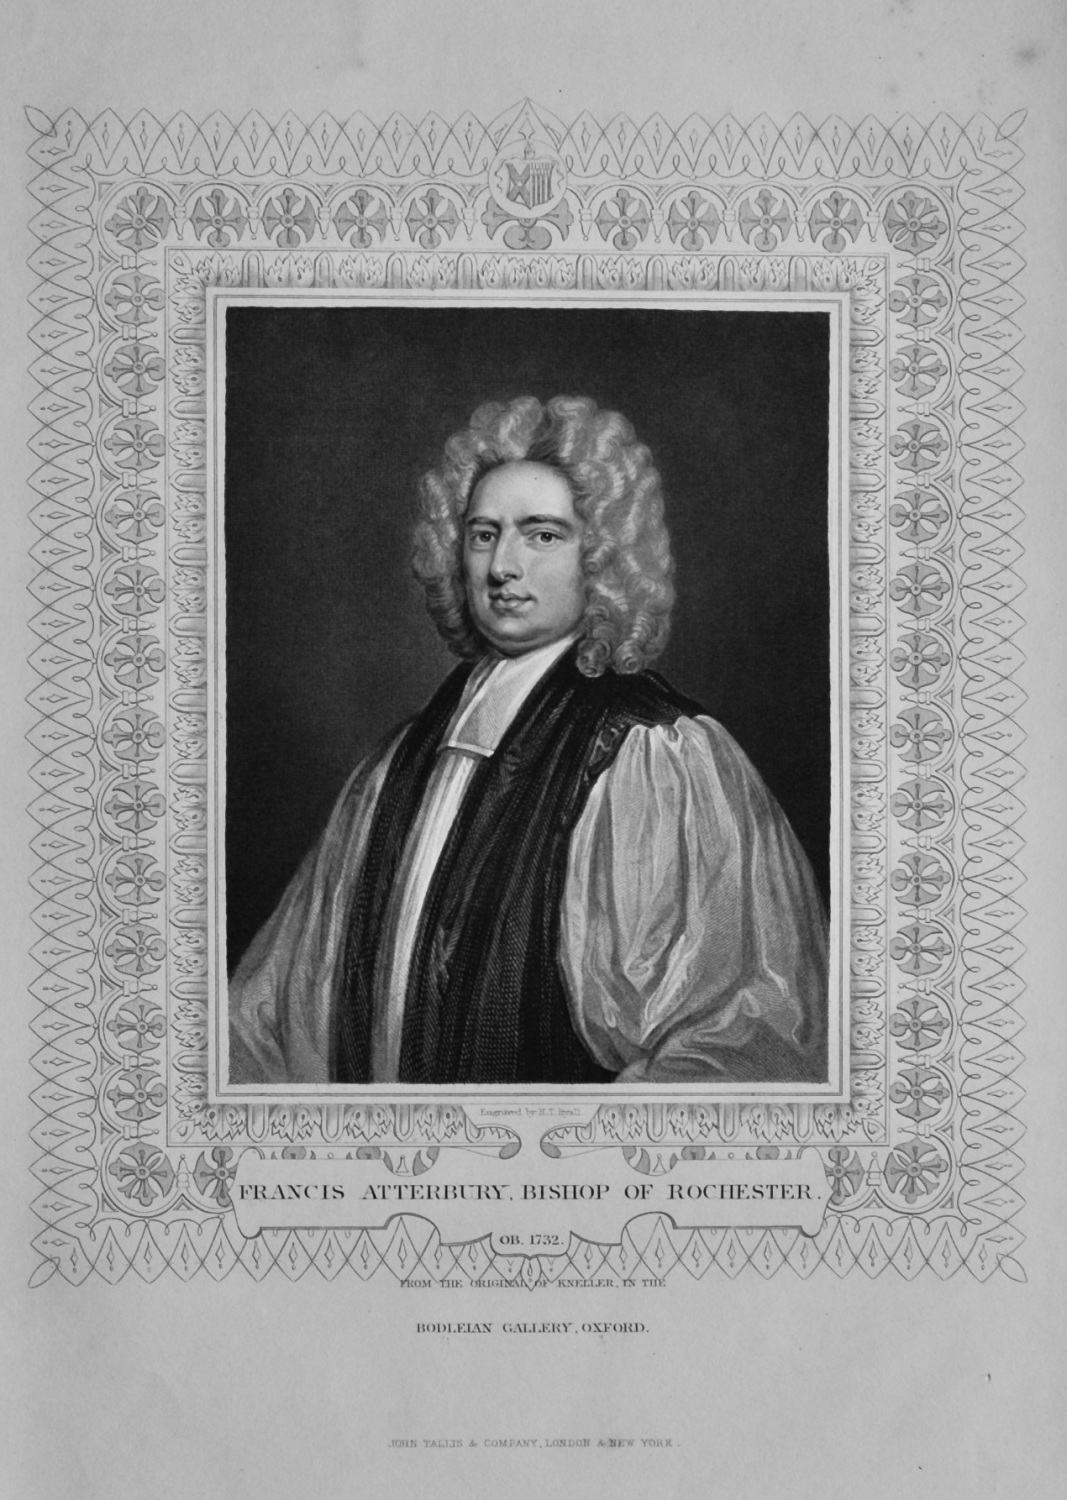 Francis Atterbury, Bishop of Rochester.